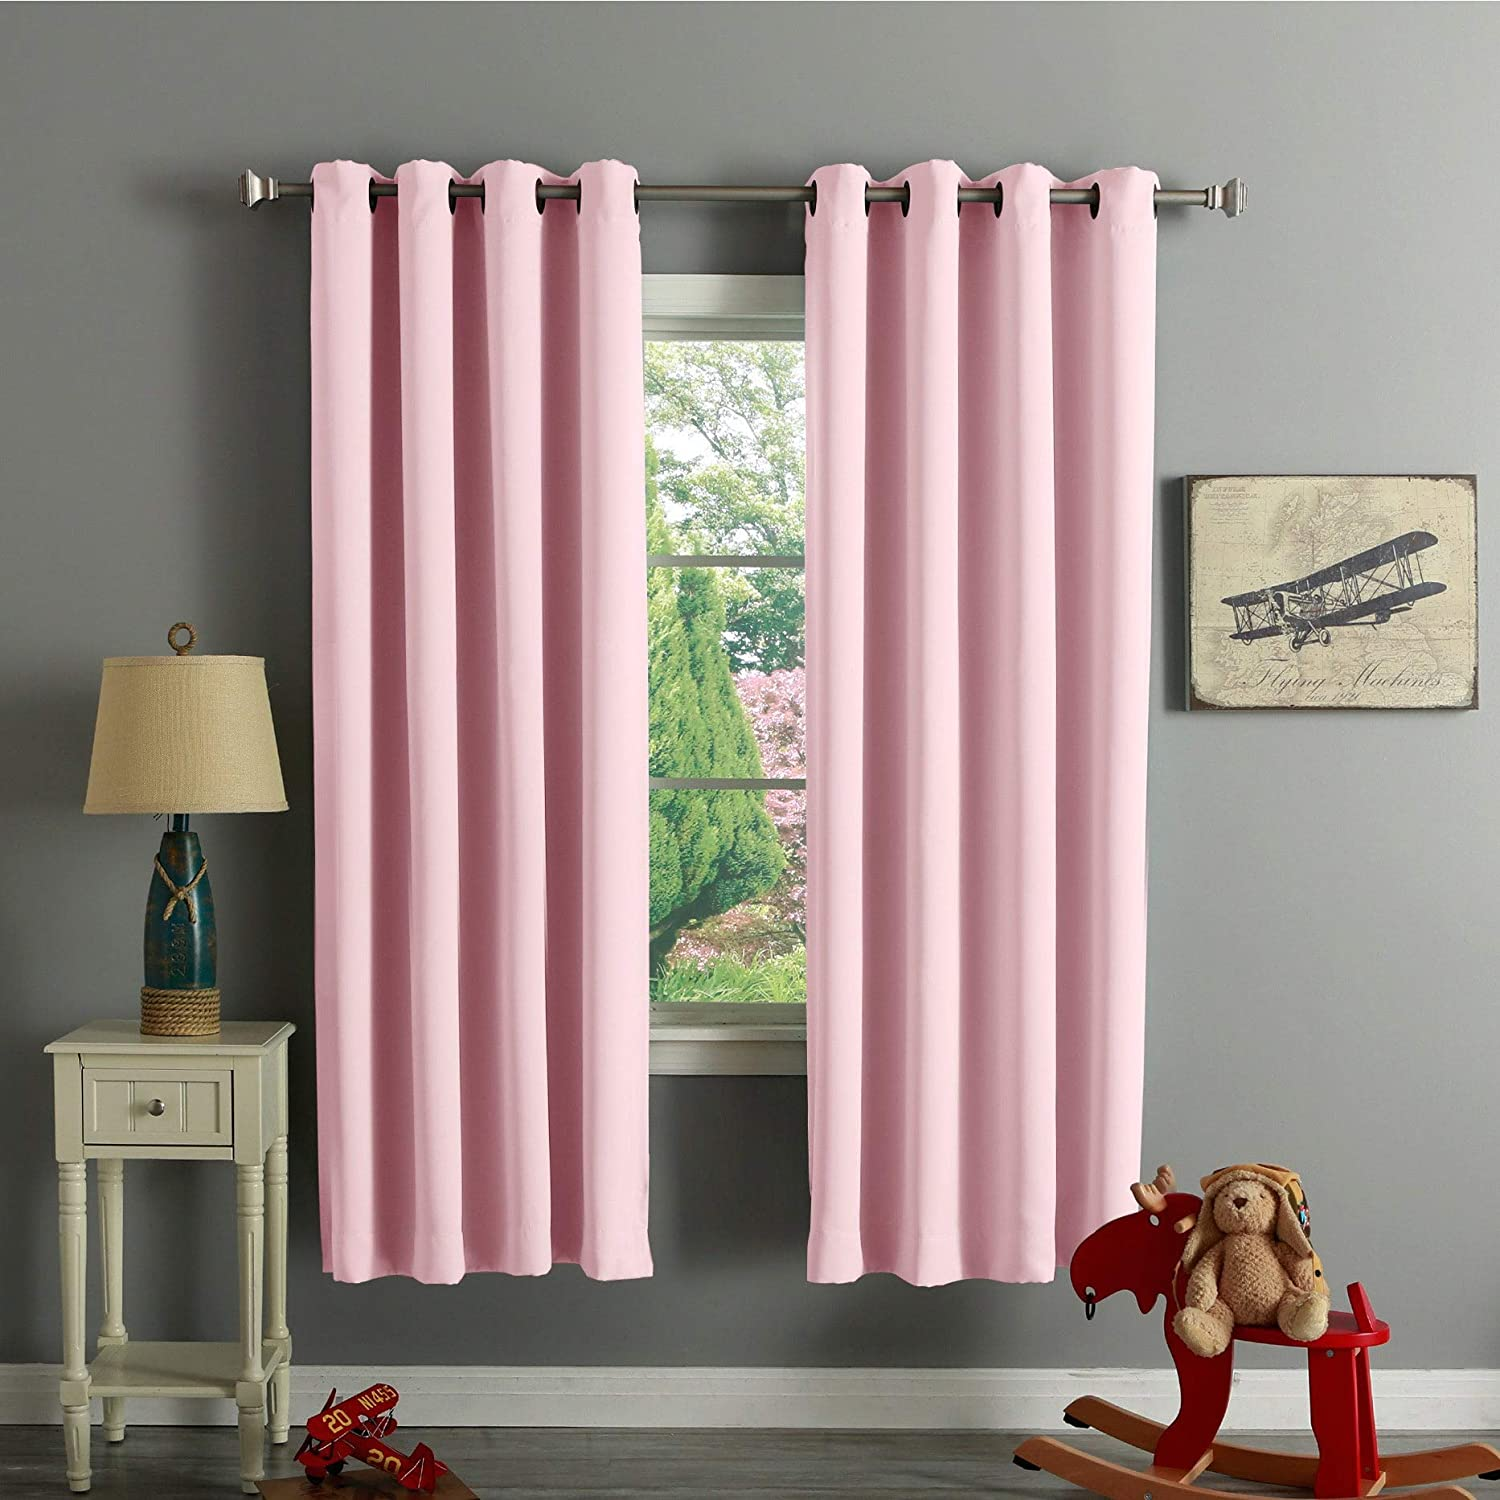 Aurora Home Thermal Insulated 72-inch Blackout Curtain Pair - 52 x 72-52 x 72 Light Pink